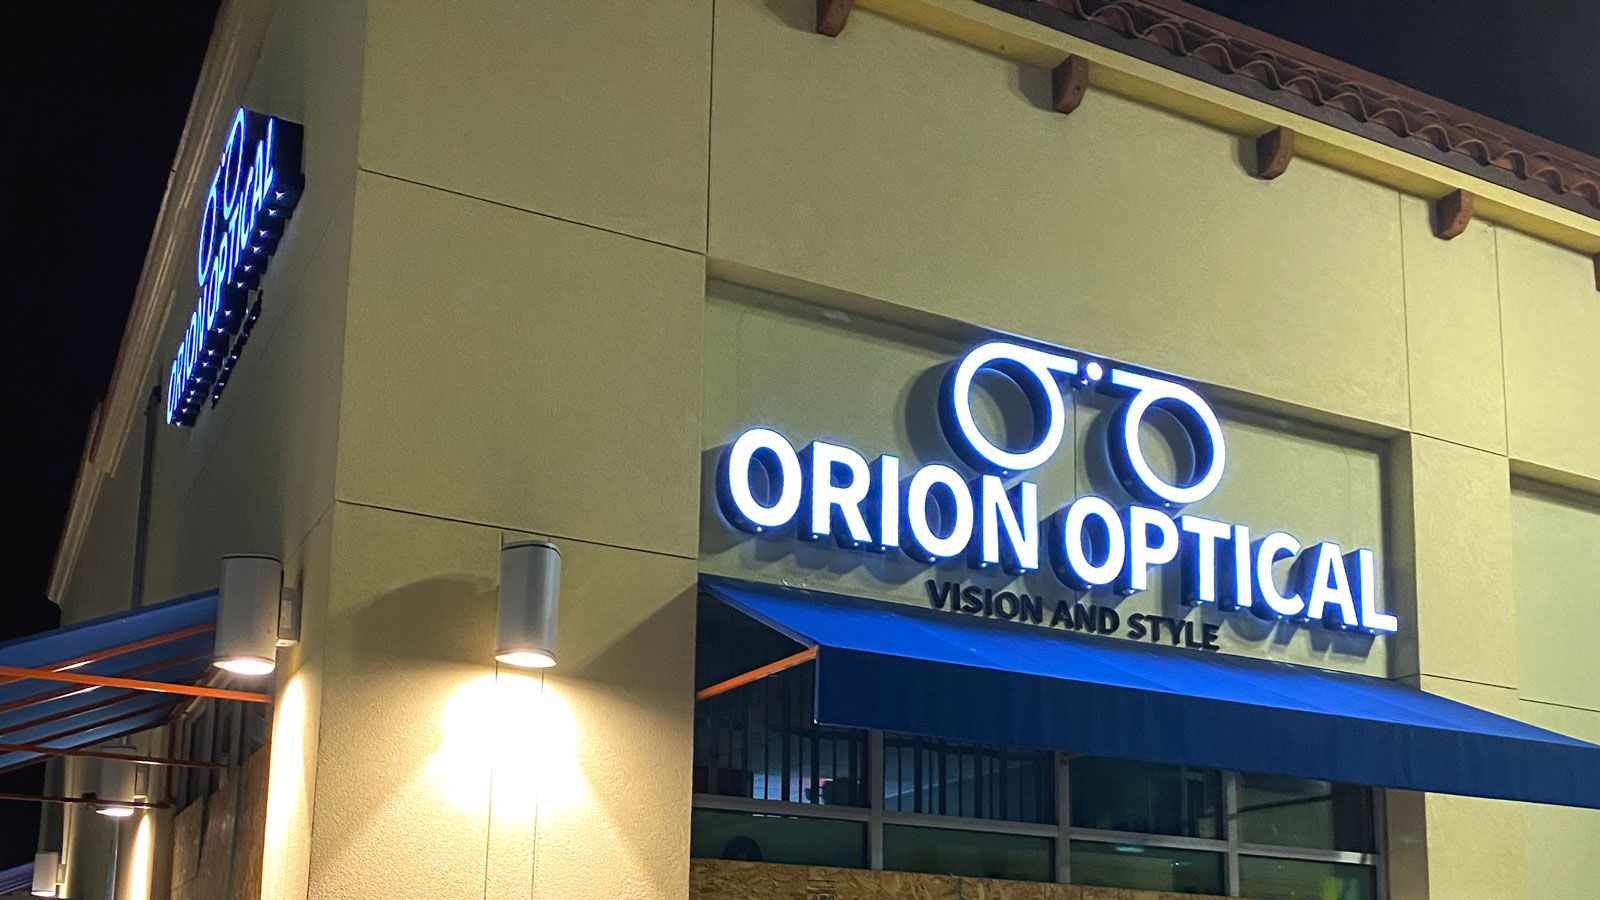 orion optical channel letters